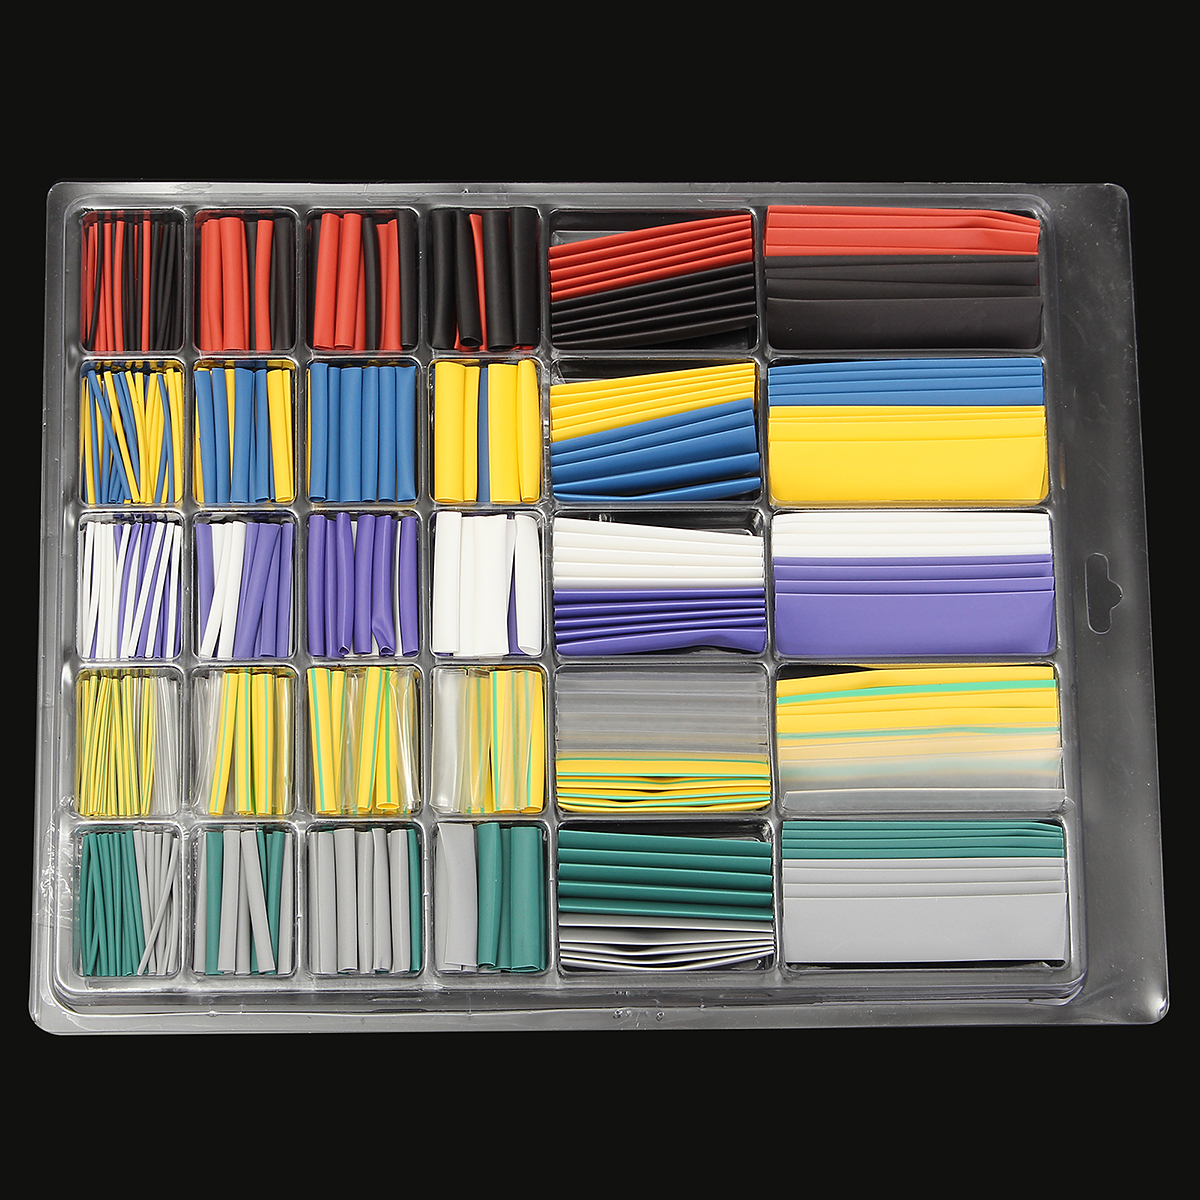 500x 2:1 Heat Shrink Wire Tubing Cable Sleeving Wrap Kit φ1.0/3.0/4.0/6.0/8.0/12.0mm Internal Diameter Halogen-Free